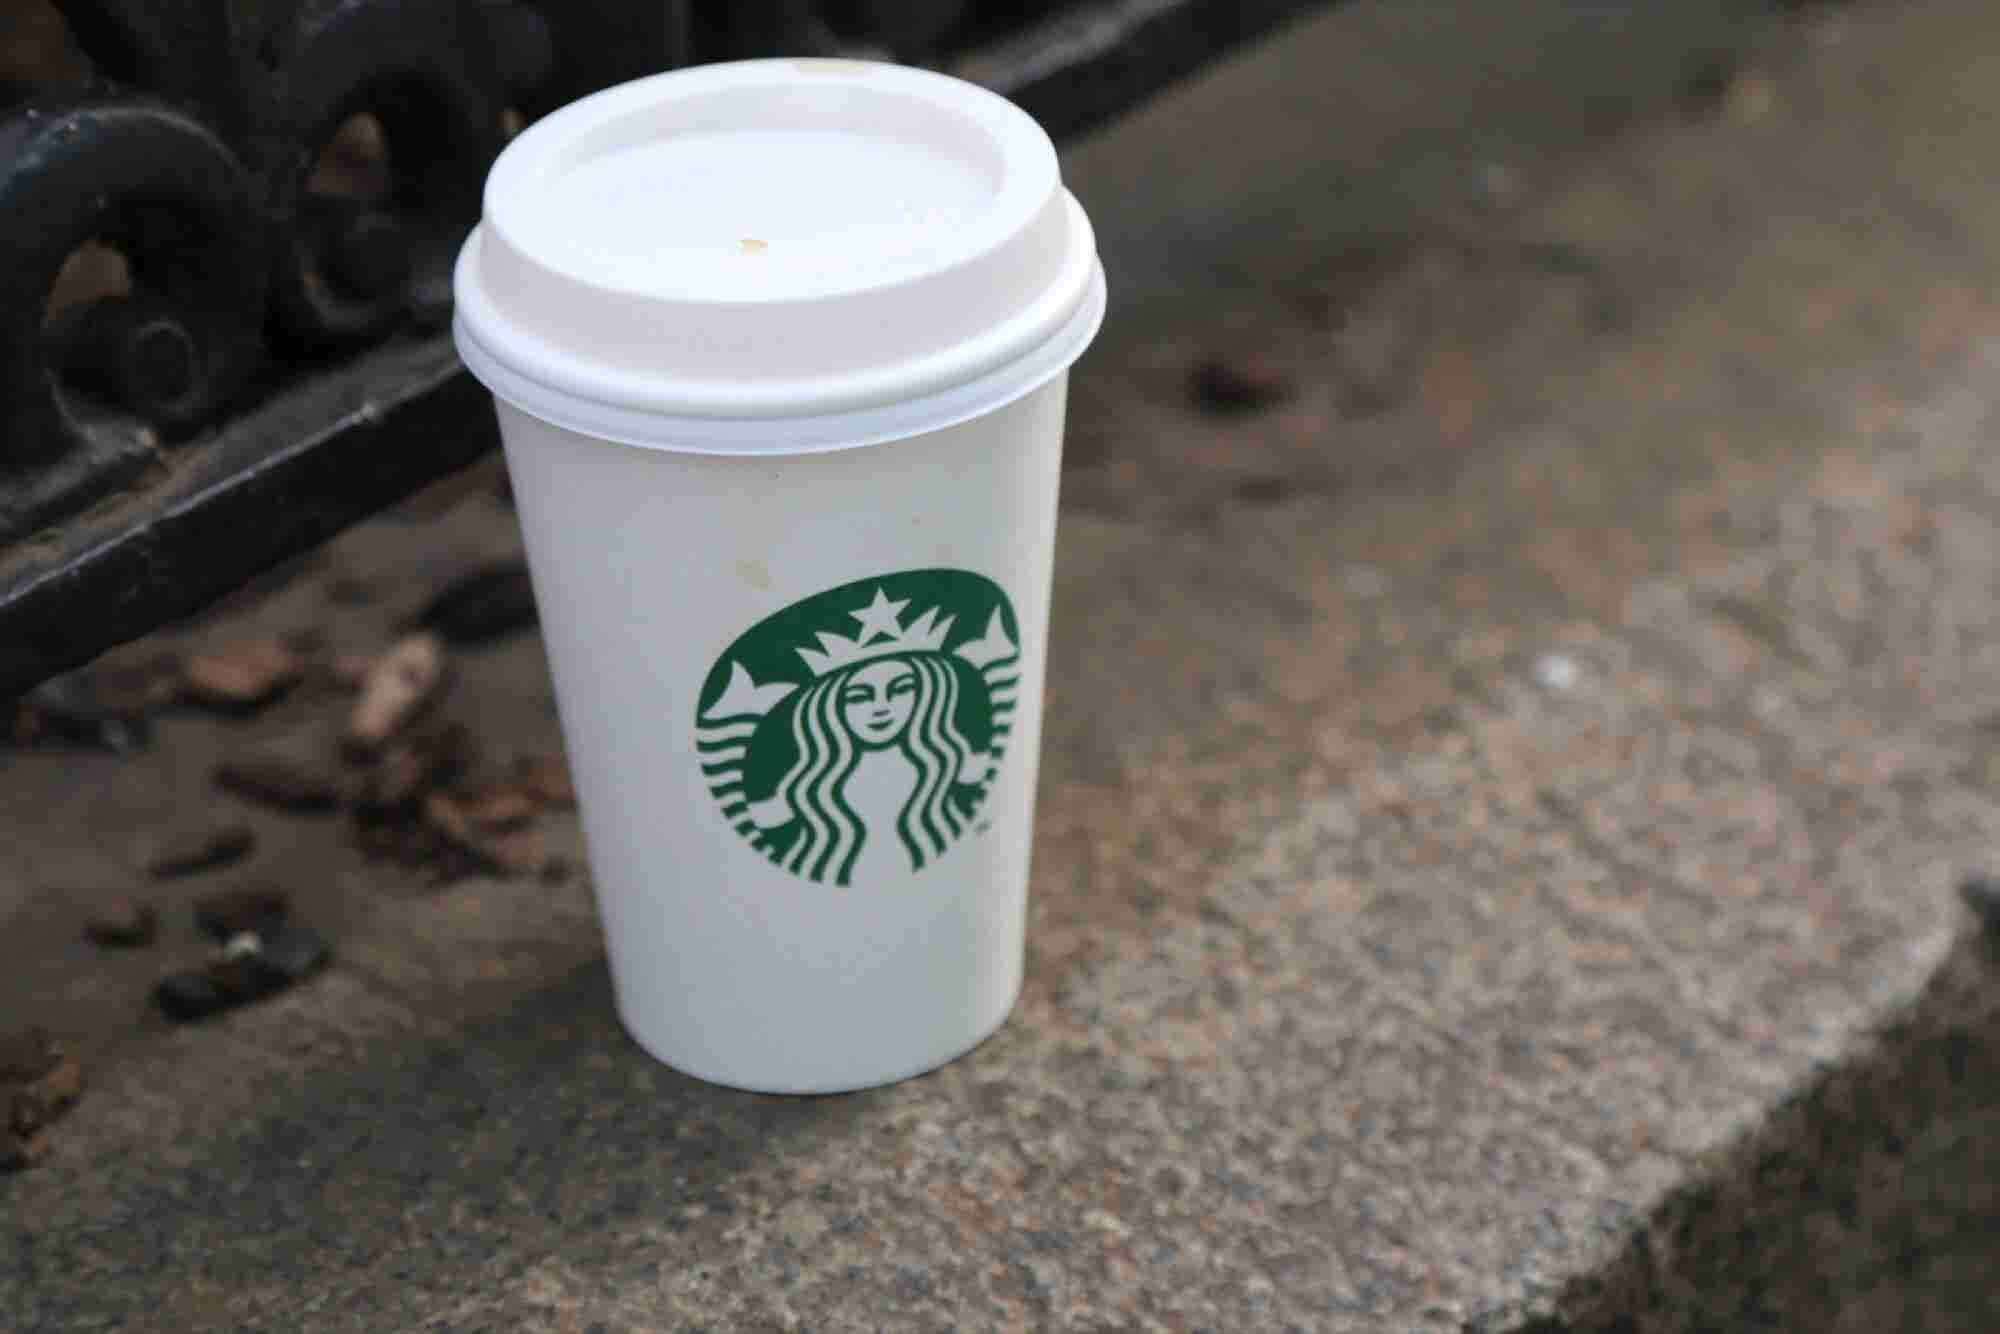 How One Man Figured Out to Get a Free Starbucks Drink Every Day